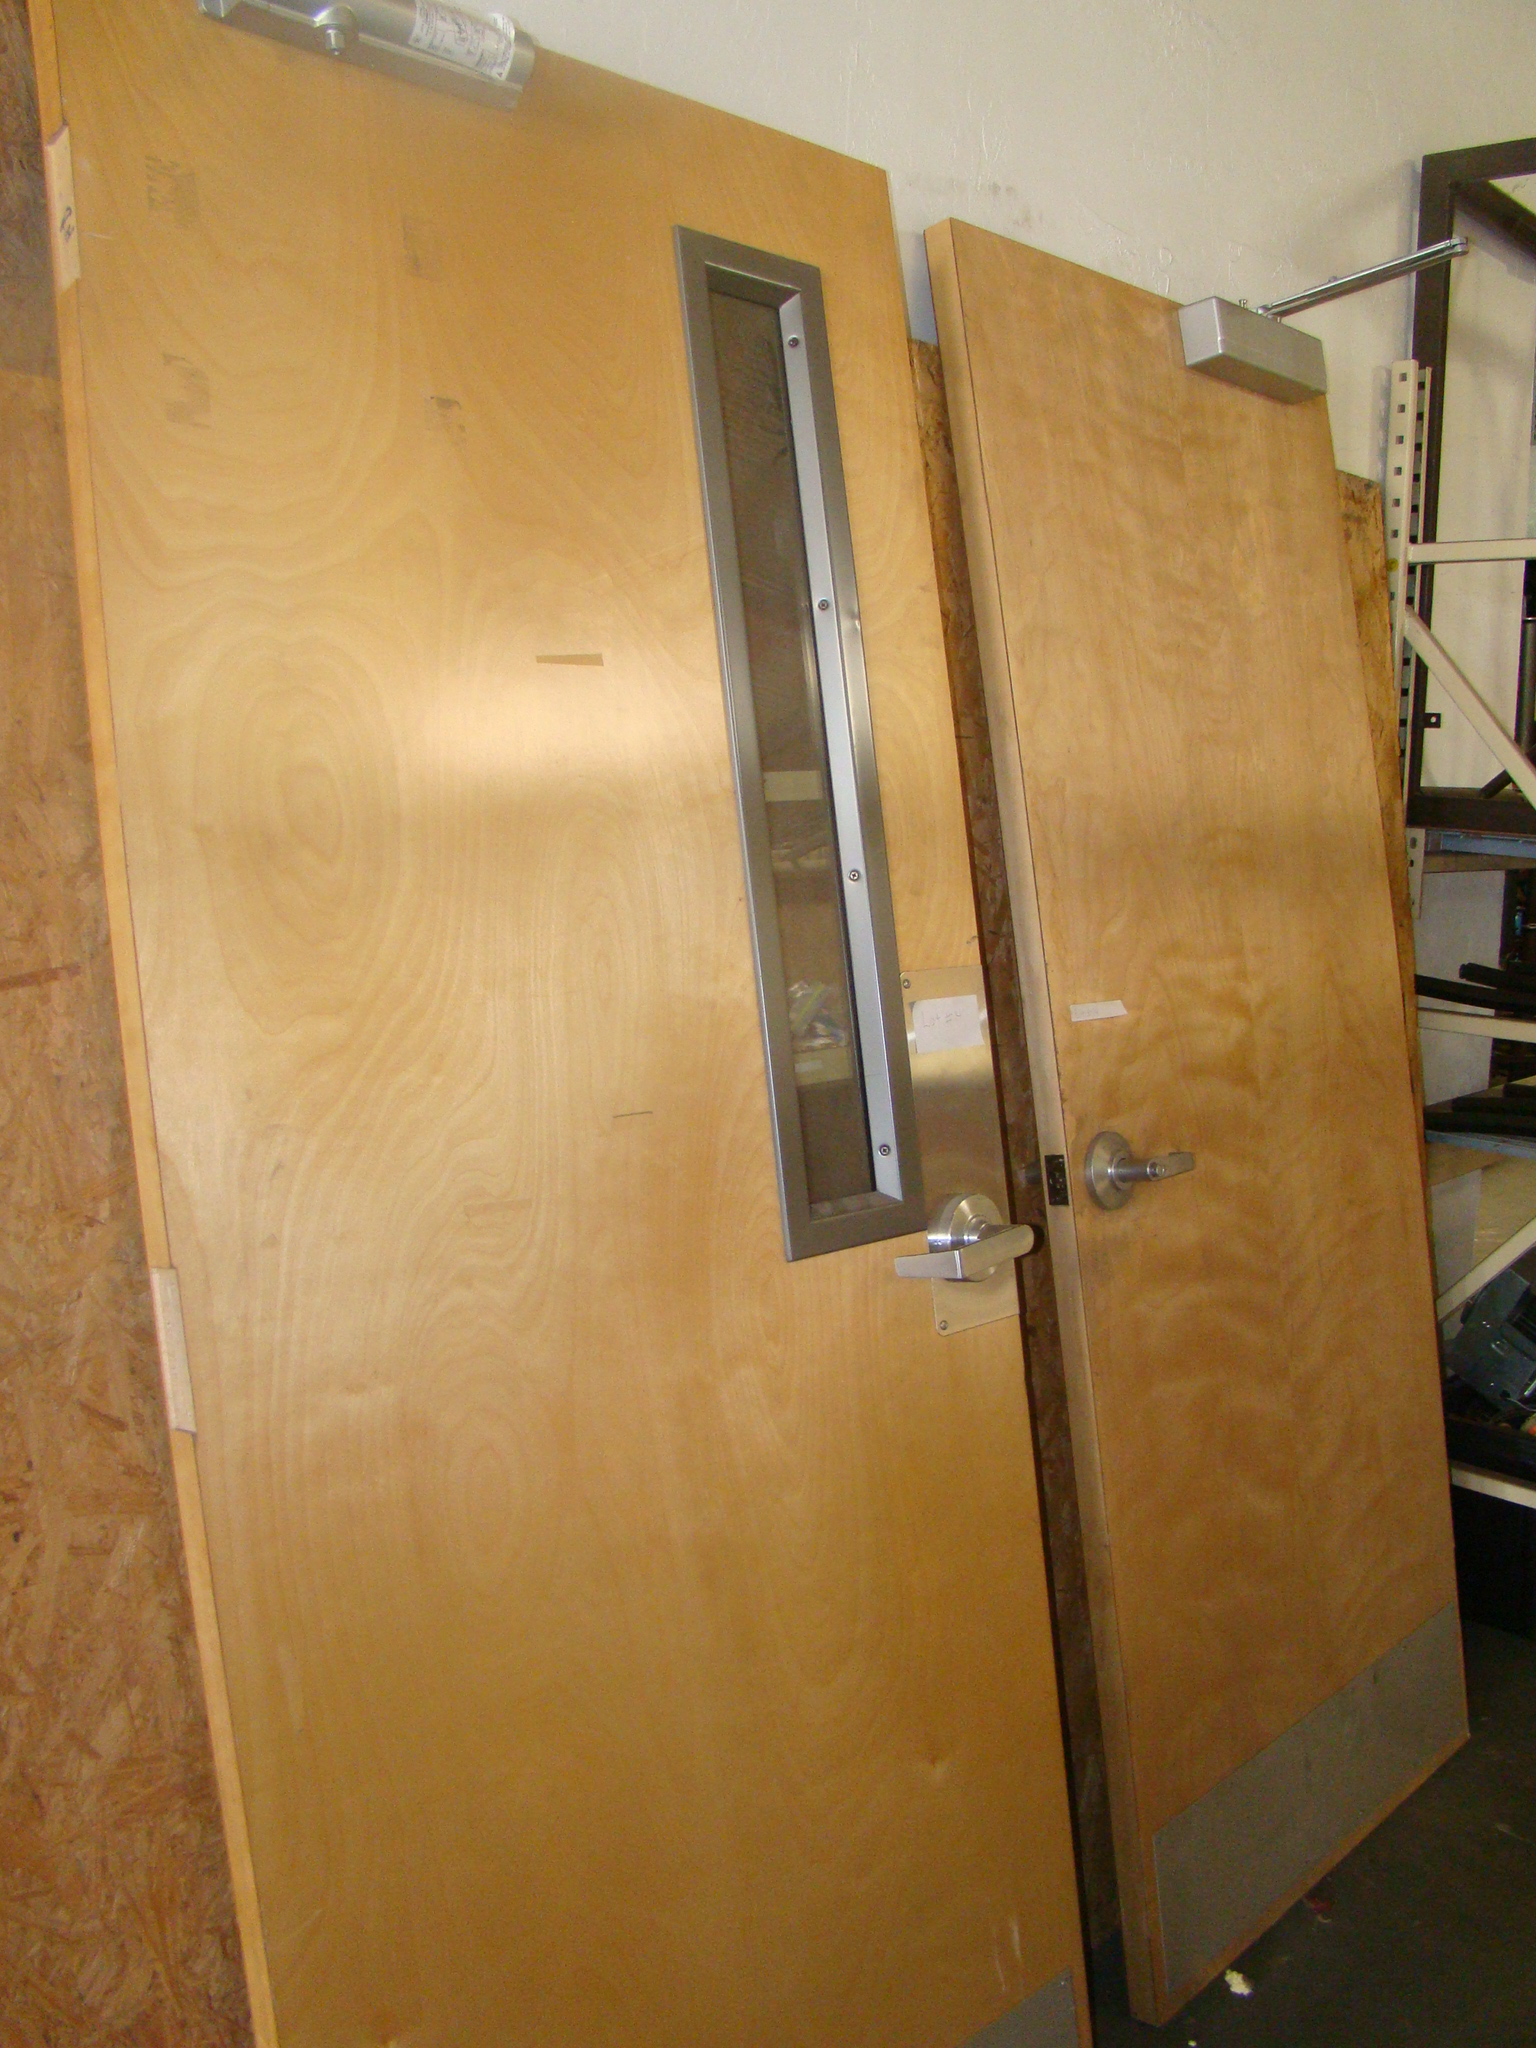 "Lot 14 - 2 Office doors 83 1/2"" x 36""outward swing"